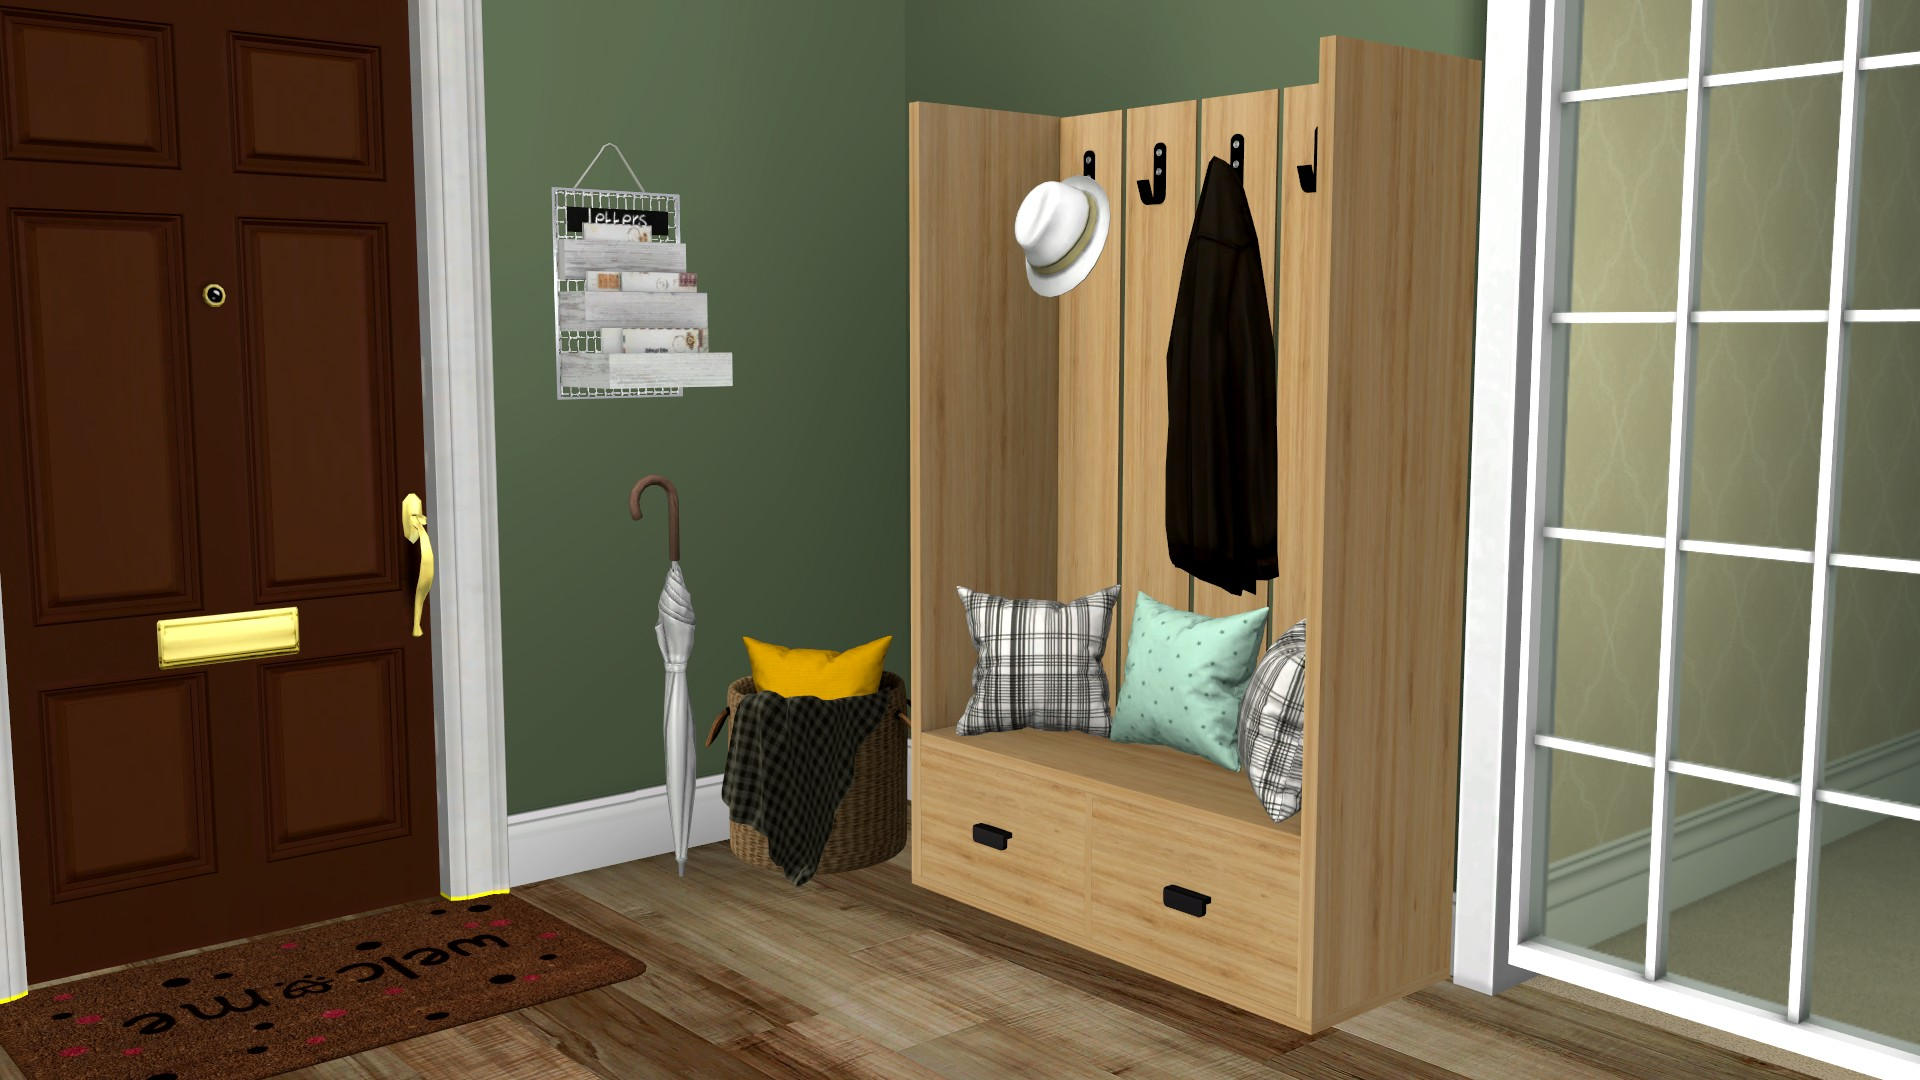 Carter Entryway Set, high quality sims 4 cc, sunkissedlilacs, free sims 4 furniture, sims 4 custom content,